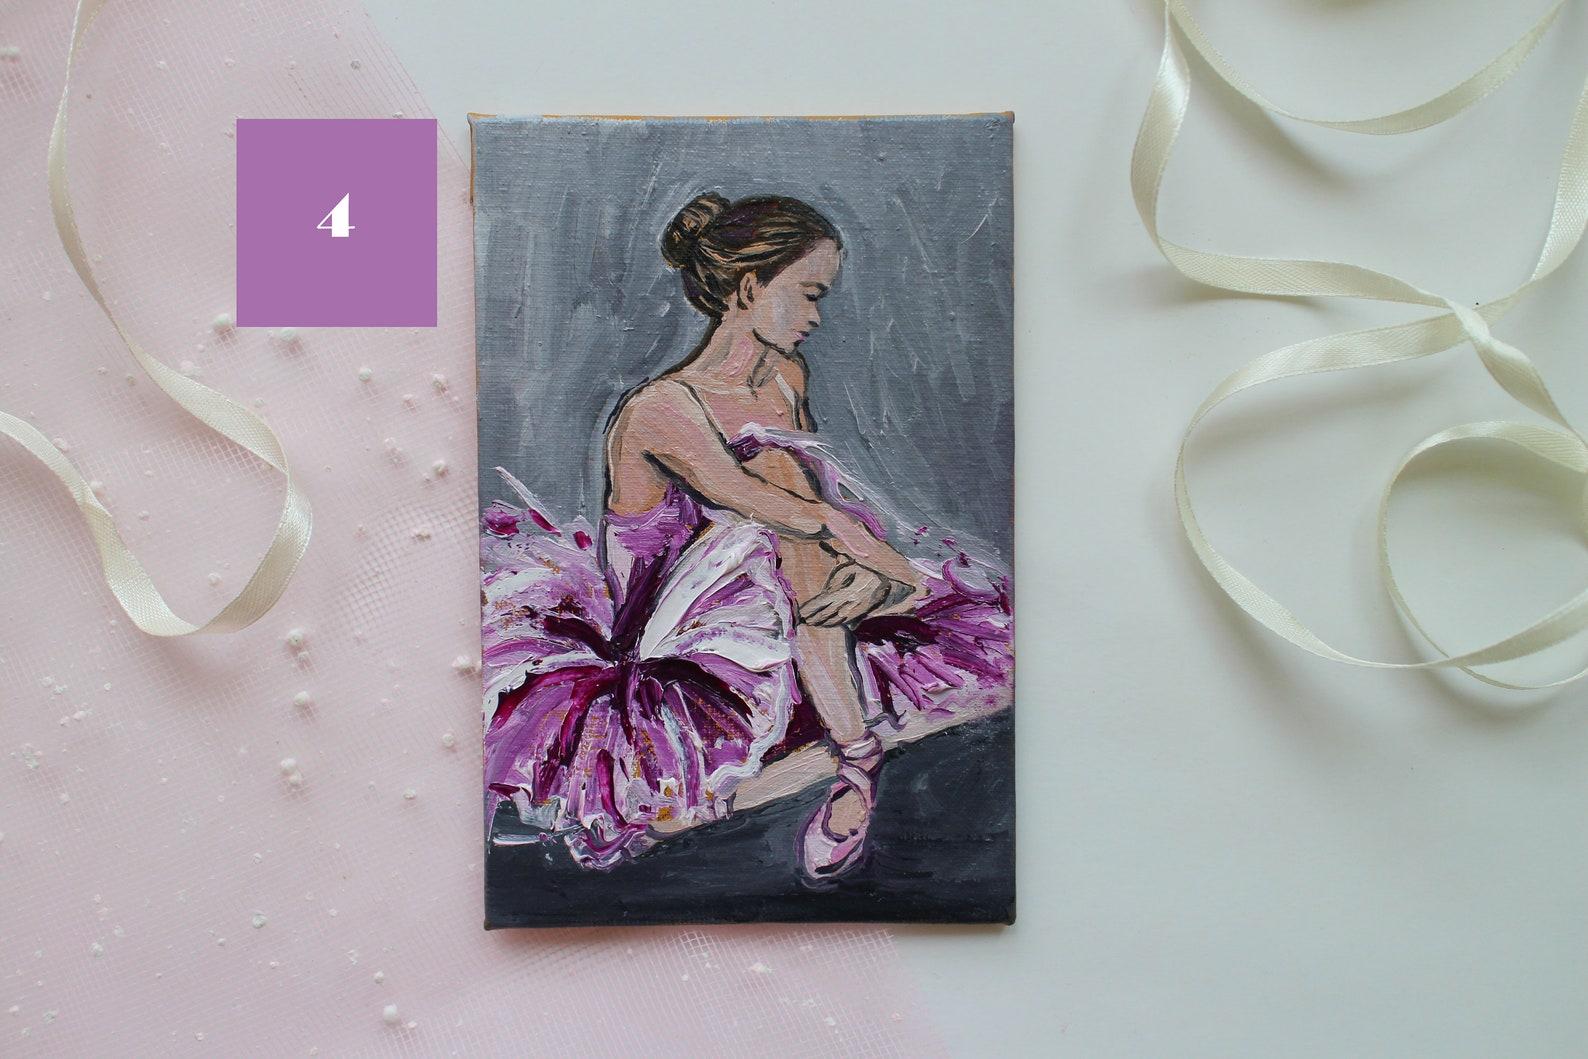 set for 4 painting, ballerina painting oil, ballet painting oil, dancer painting, ballet dancer art, mini painting, pointe shoes